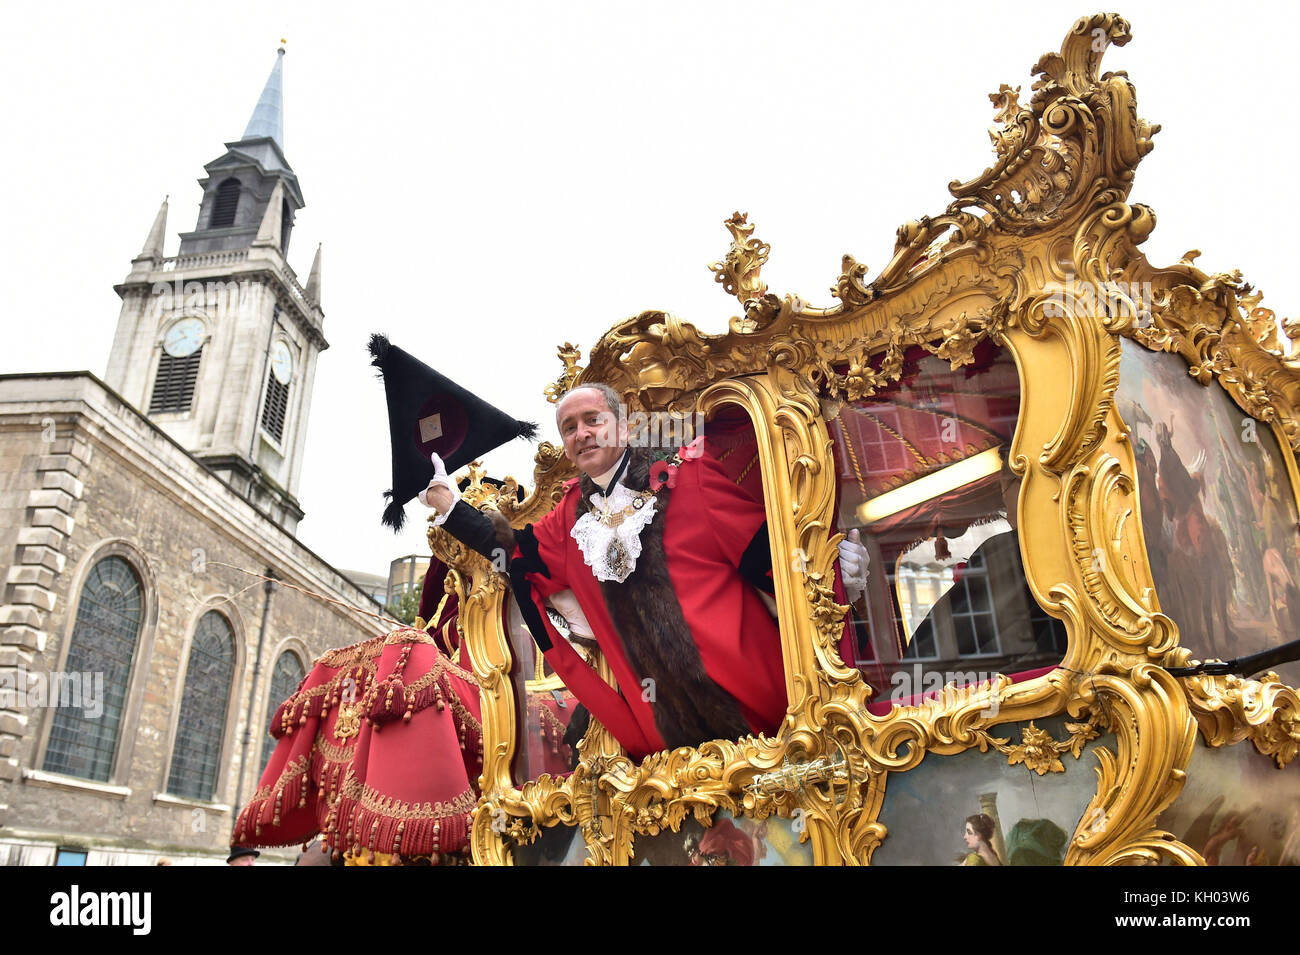 The new Lord Mayor of London Charles Bowman waves from the Lord Mayor's State Coach at Guildhall in London, - Stock Image